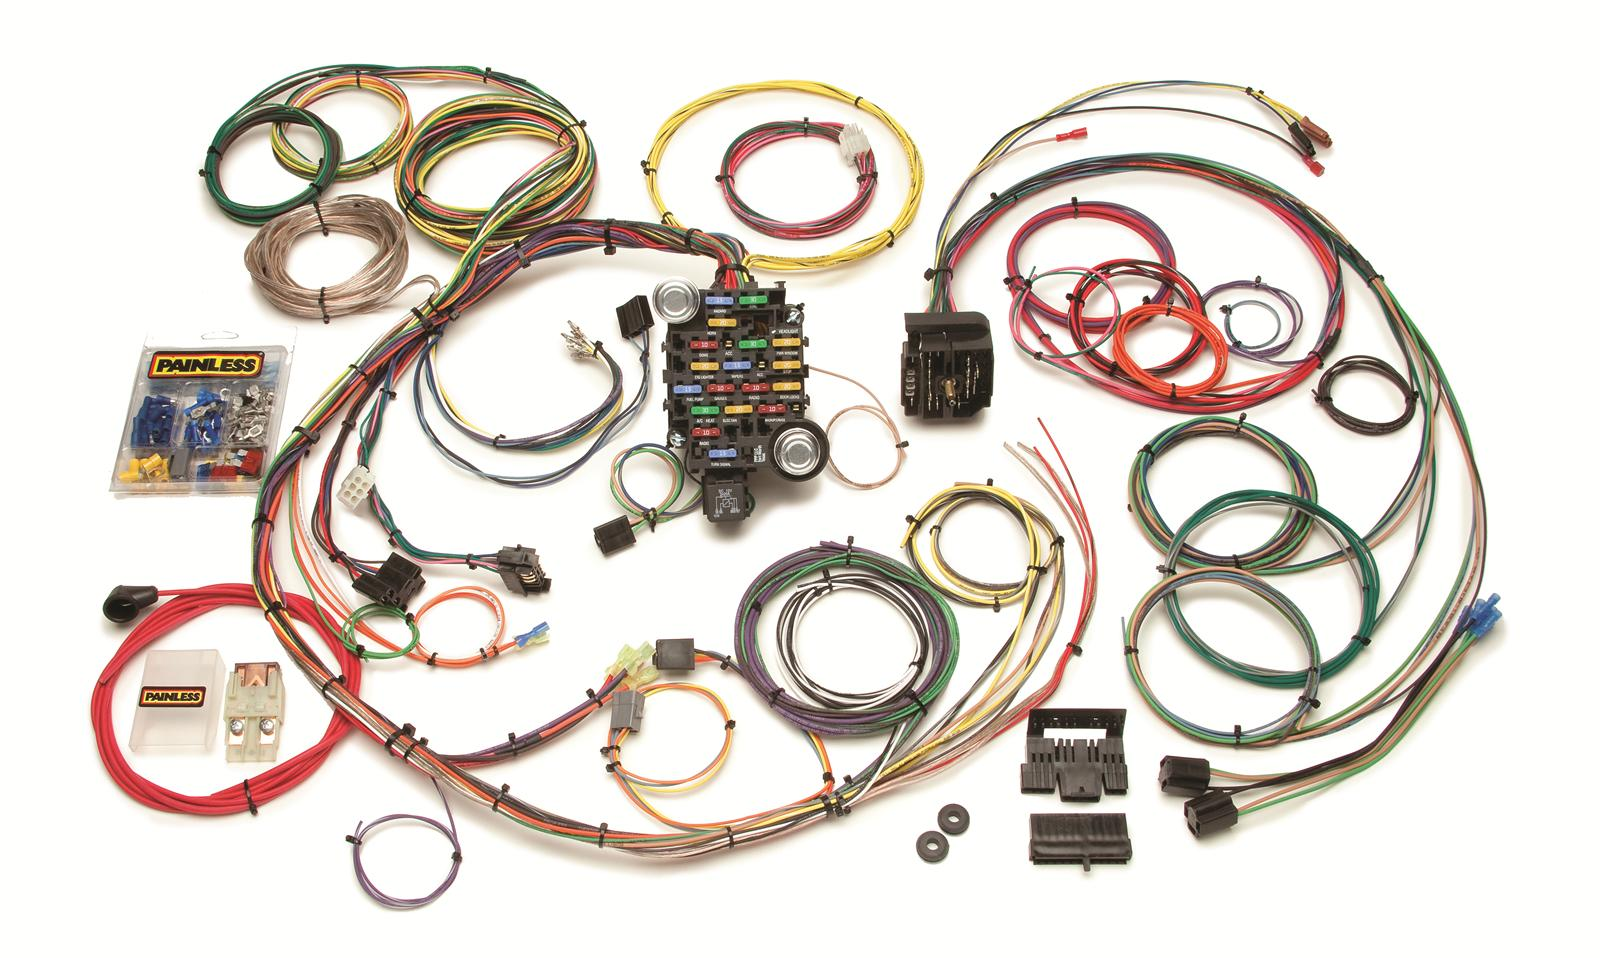 Painless Performance 24 Circuit 1967 68 Camaro And Firebird Wiper Washer Motor Wiring Diagram For Repalcement Harnesses 20101 Free Shipping On Orders Over 49 At Summit Racing